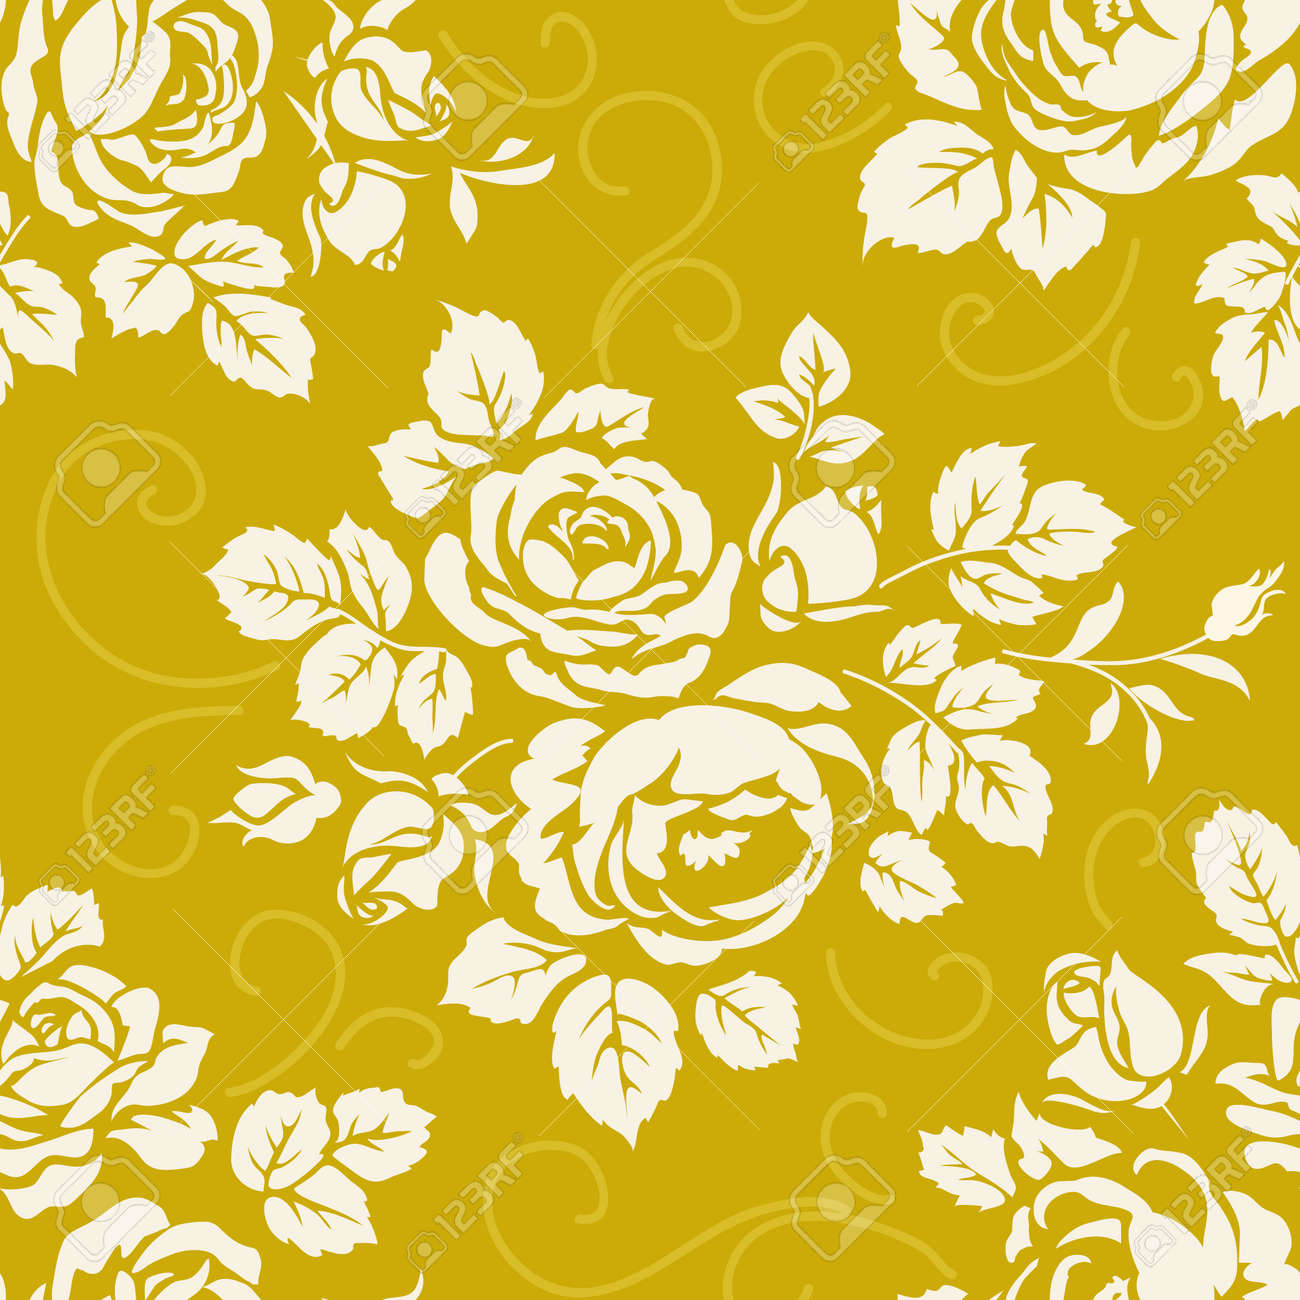 Seamless Pattern With Roses Vintage Background With Blooming